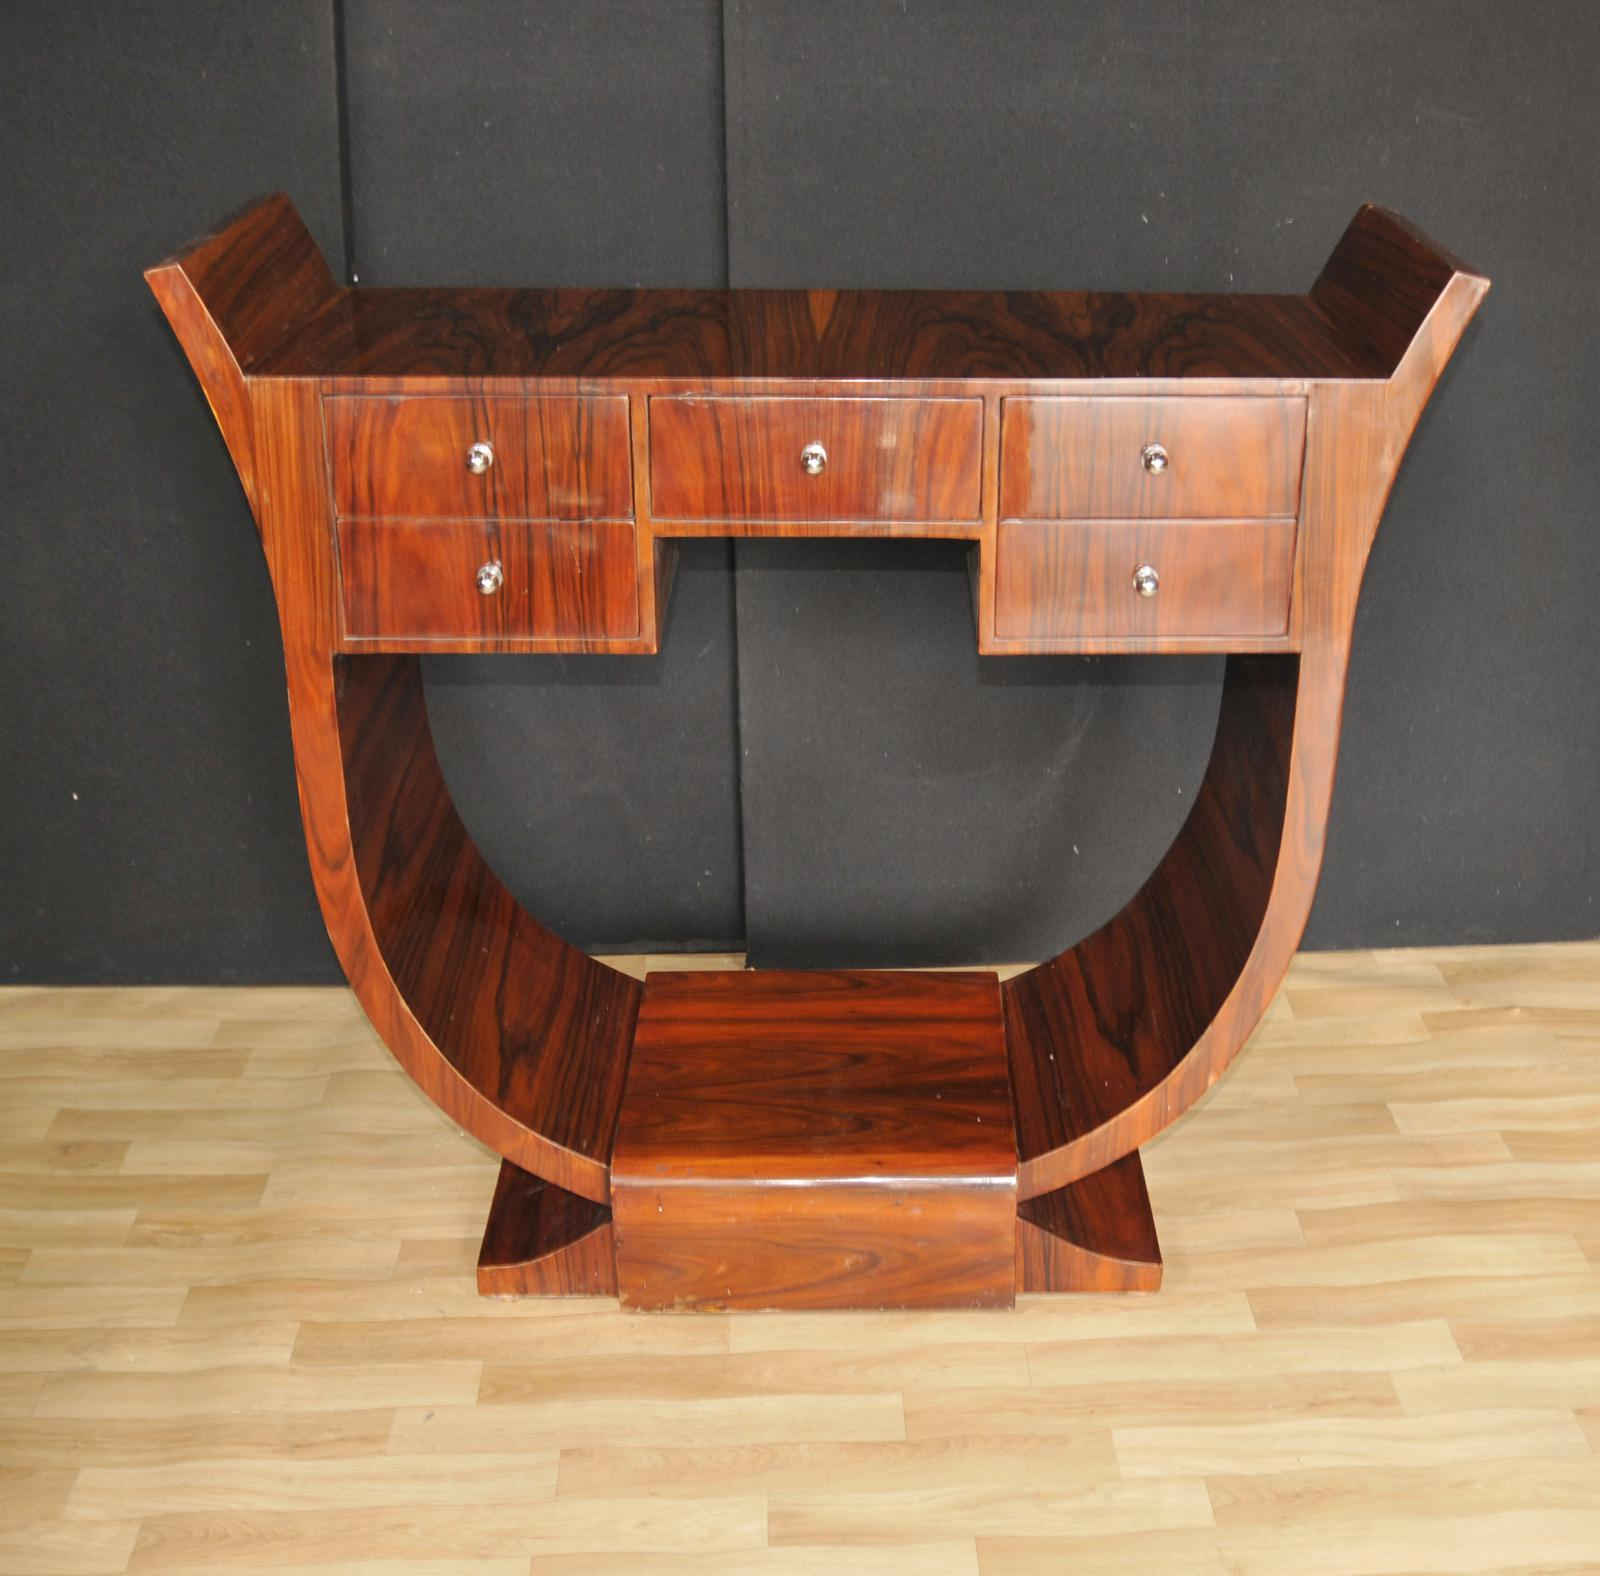 Art Deco Console Table Rosewood Modernist 1920s Furniture Ebay